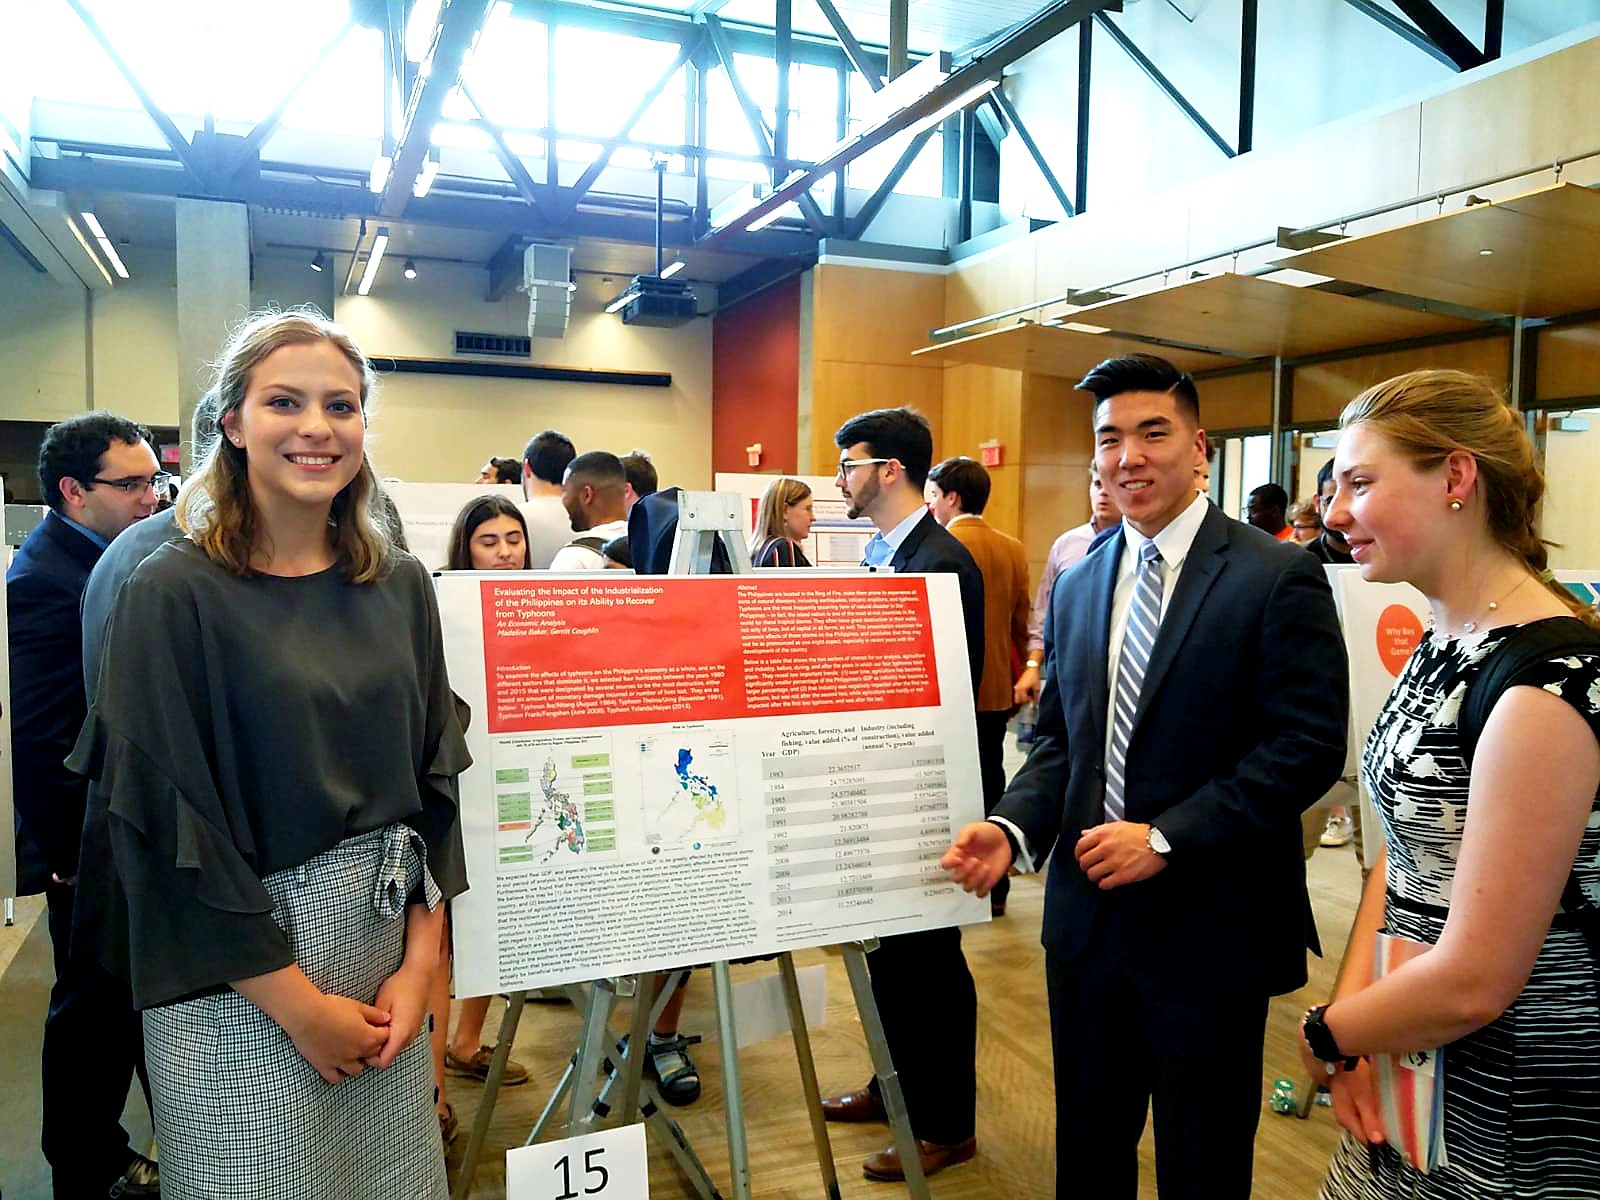 Strong Participation by Economics Students in University Research Day